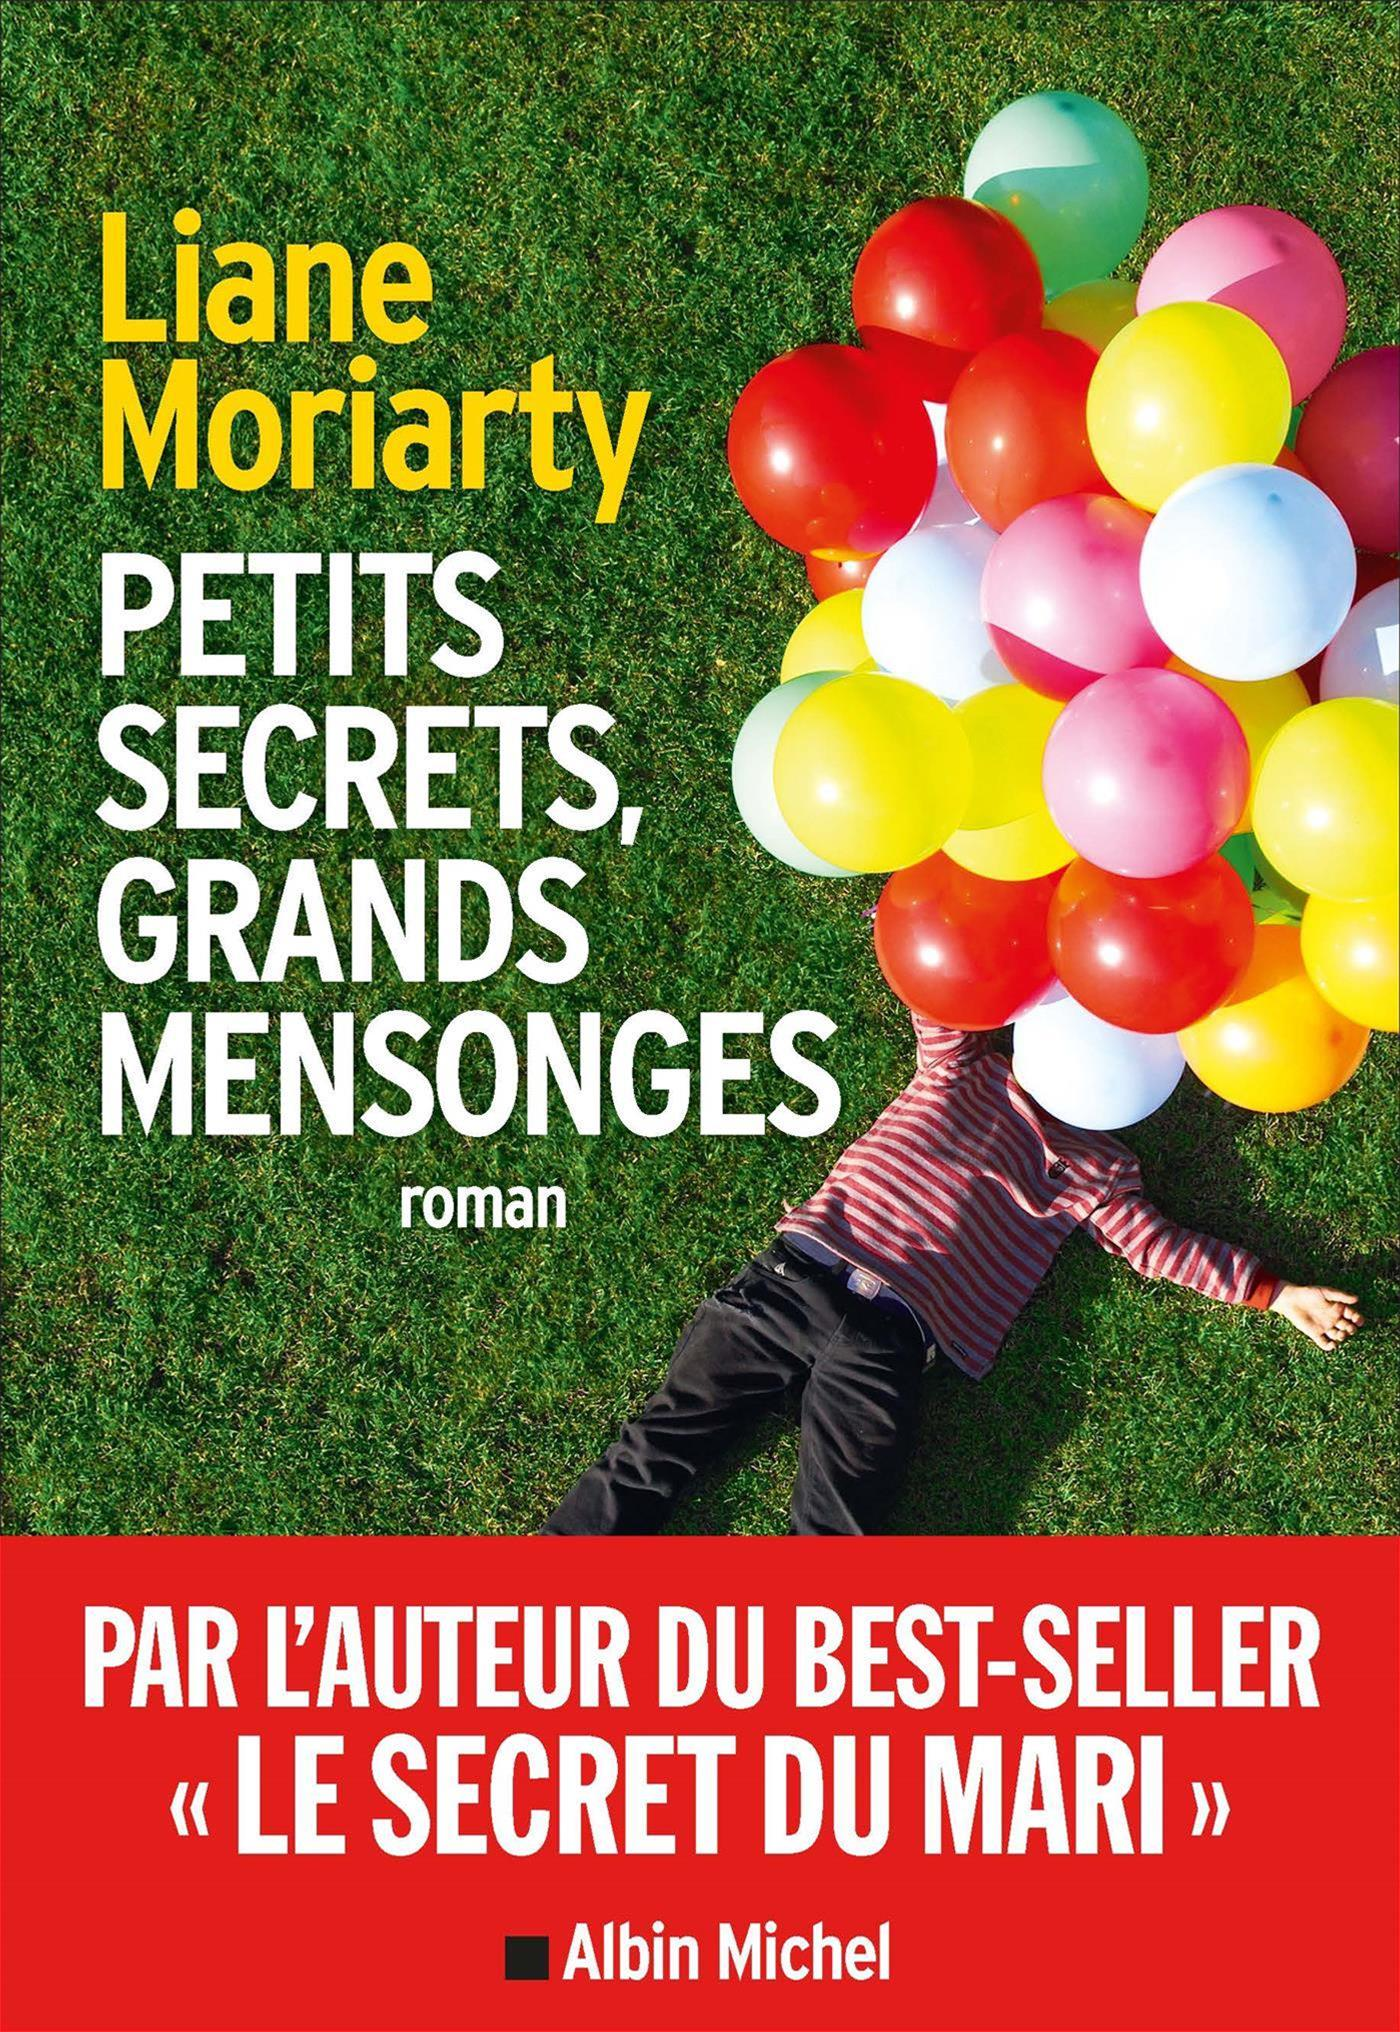 Petits secrets grands mensonges (Big little lies)